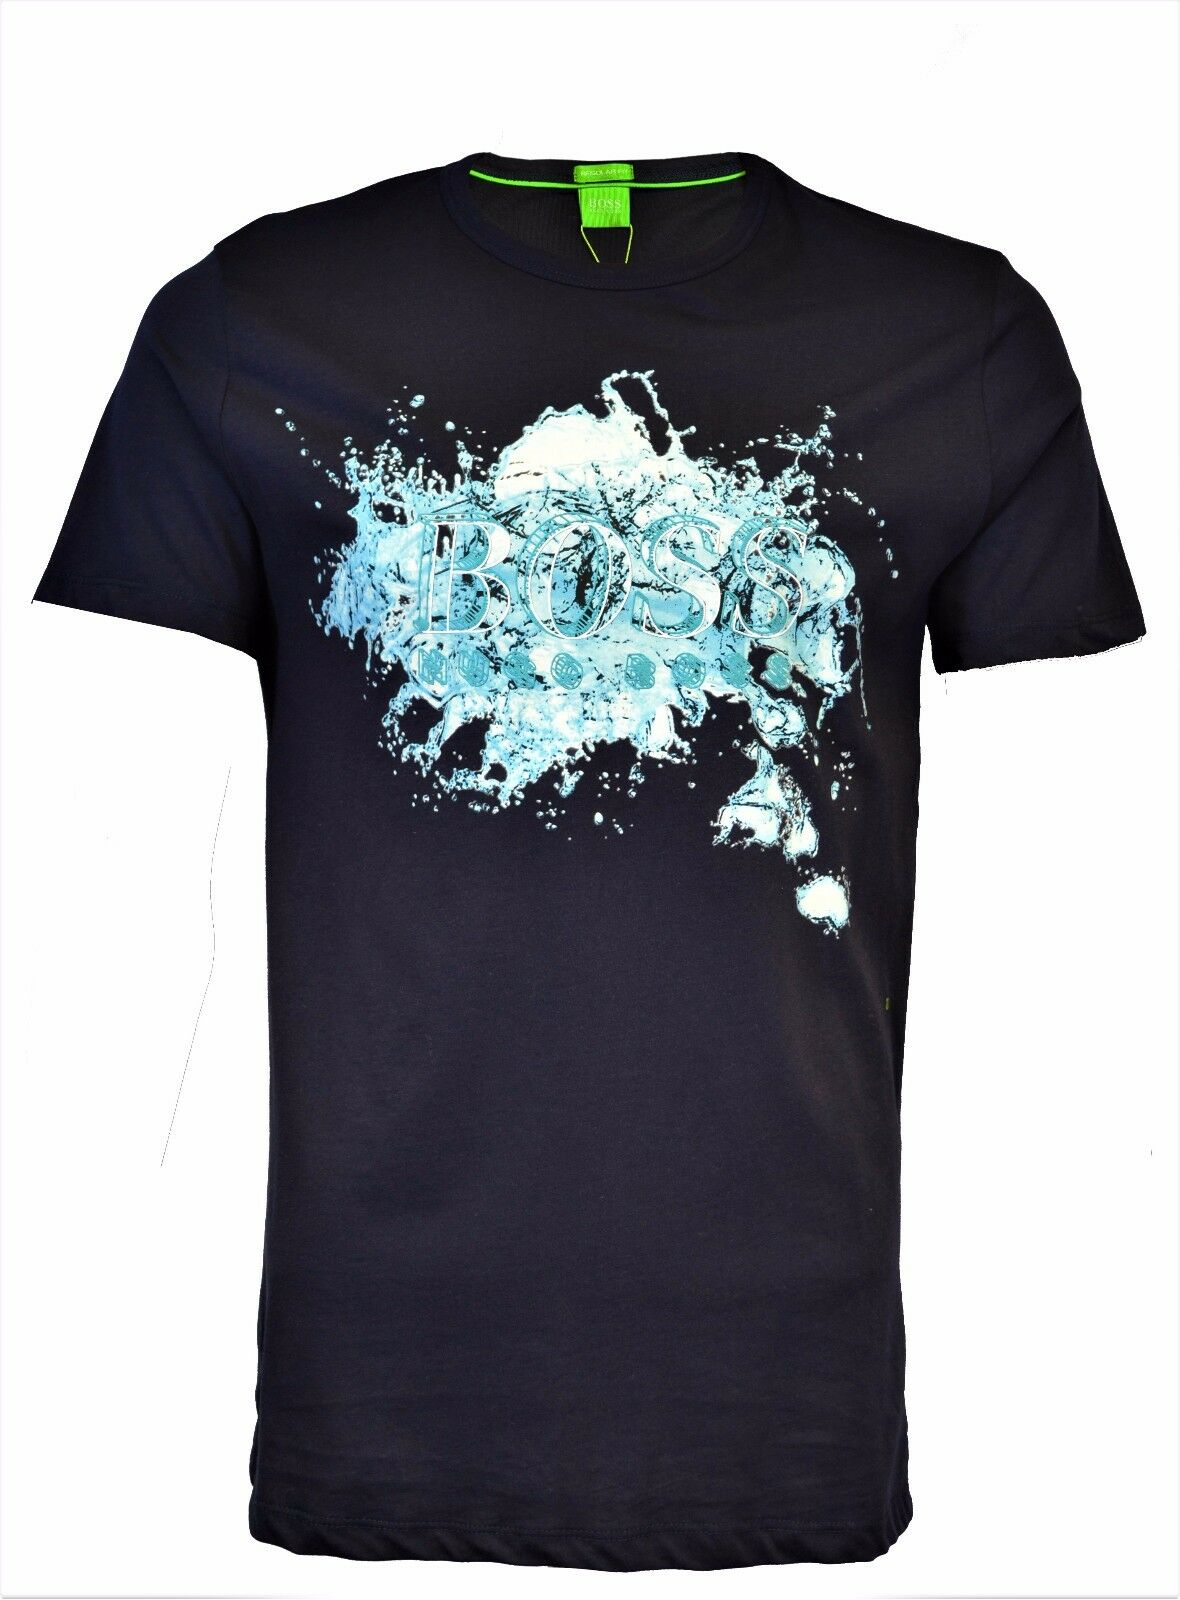 BNWT HUGO BOSS NAVY Blau WATER SPLASH PRINT T-SHIRT MAGLIETTA CAMISETA RARE